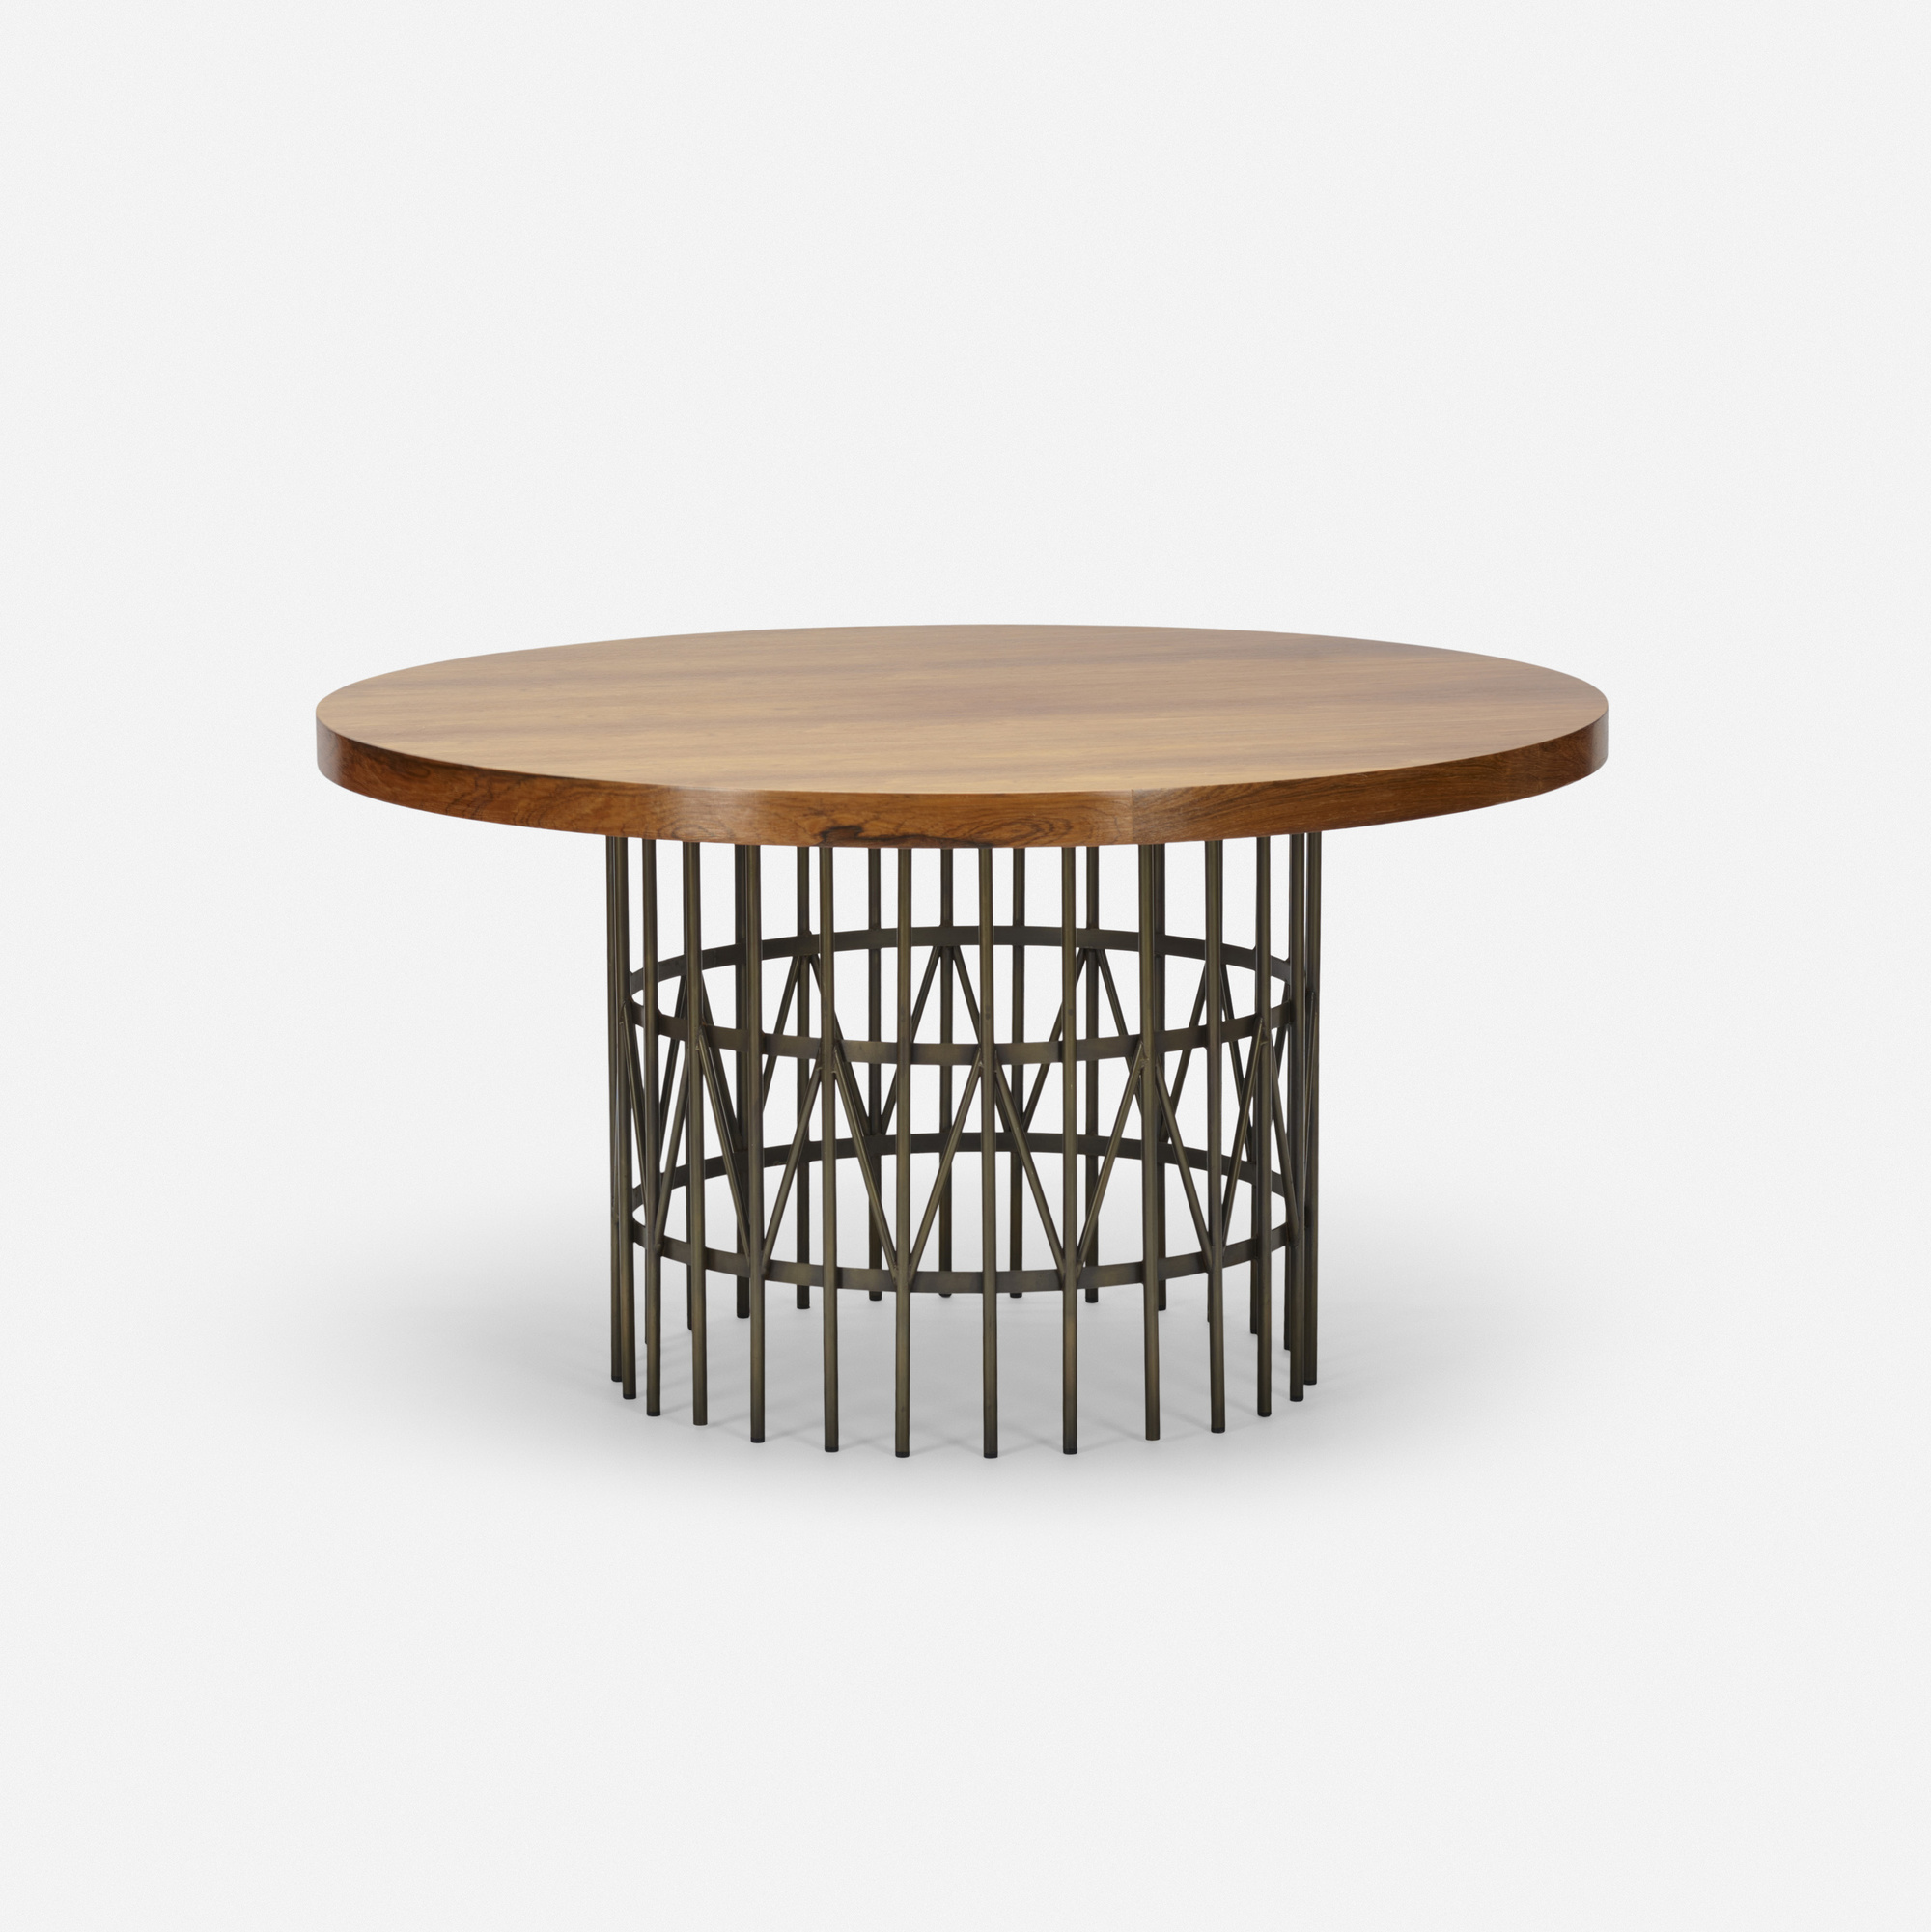 Ordinaire 108: Milo Baughman / Coffee Table (1 Of 3)